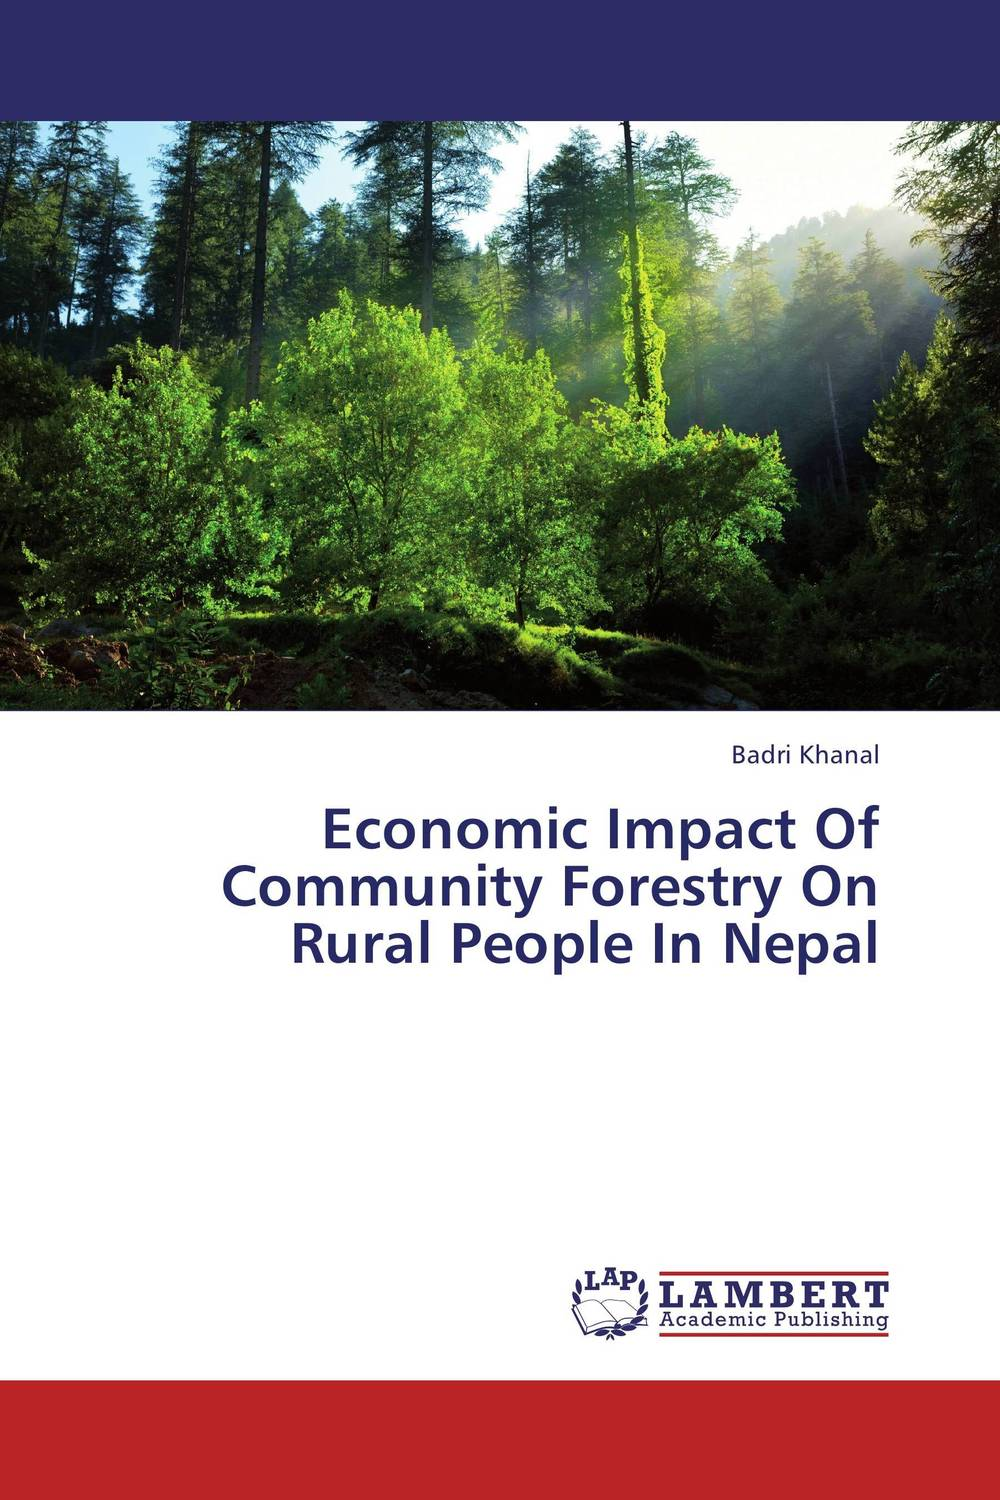 Economic Impact Of Community Forestry On Rural People In Nepal maxwell musingafi raphinos alexander chabaya and emmanuel dumbu groups and community mobilisation for development